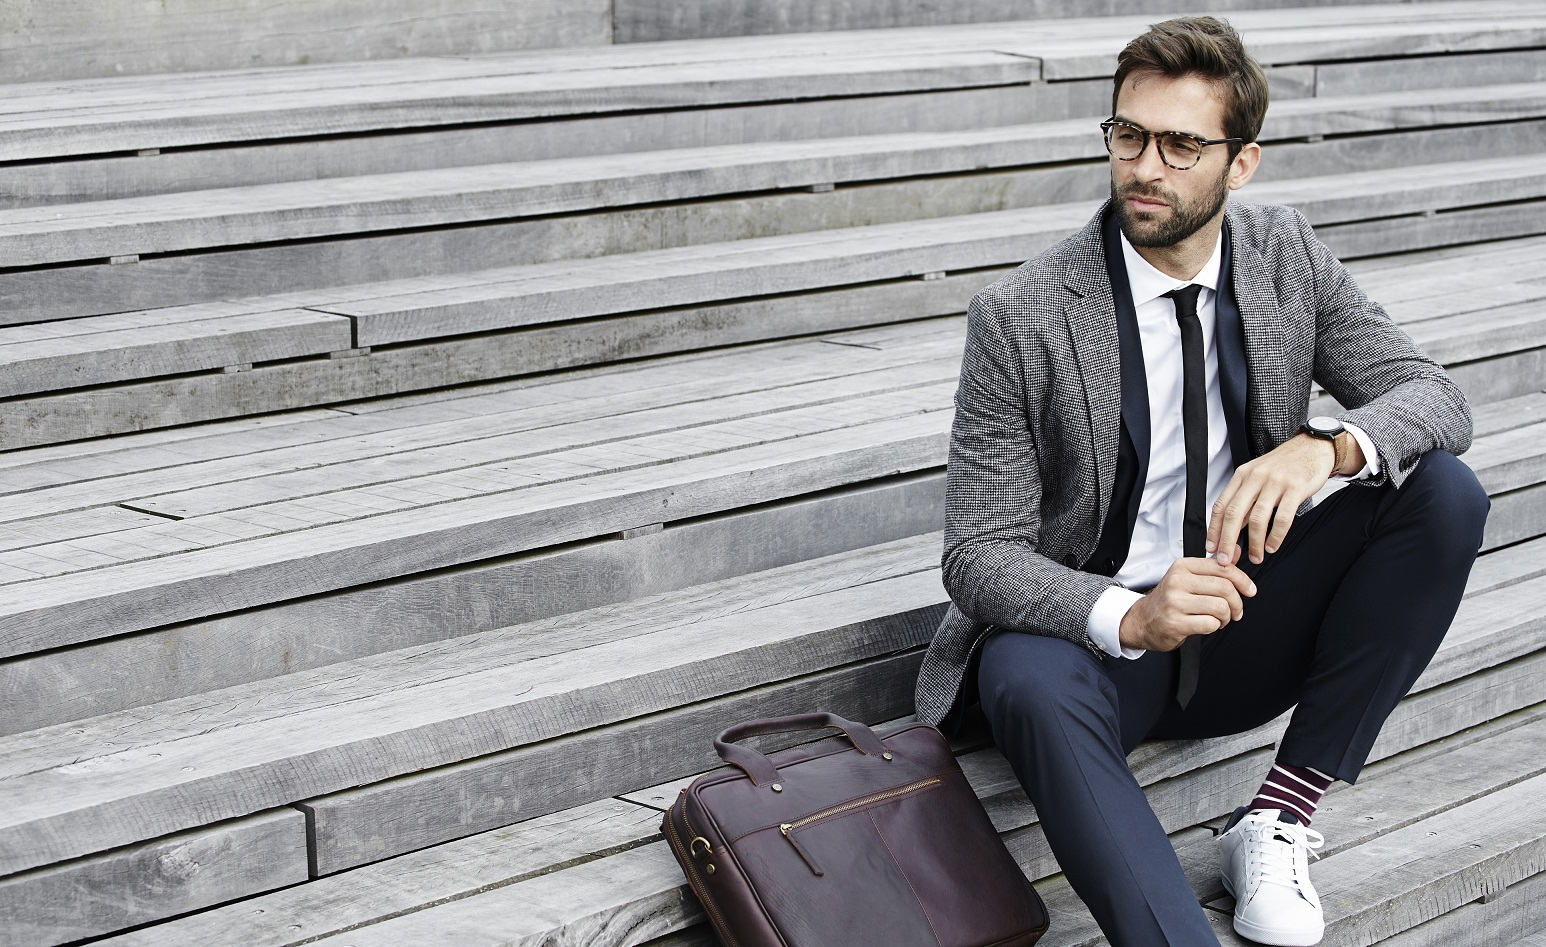 Bags can make a great statement piece. Here are a few quick ways to upgrade your outfit